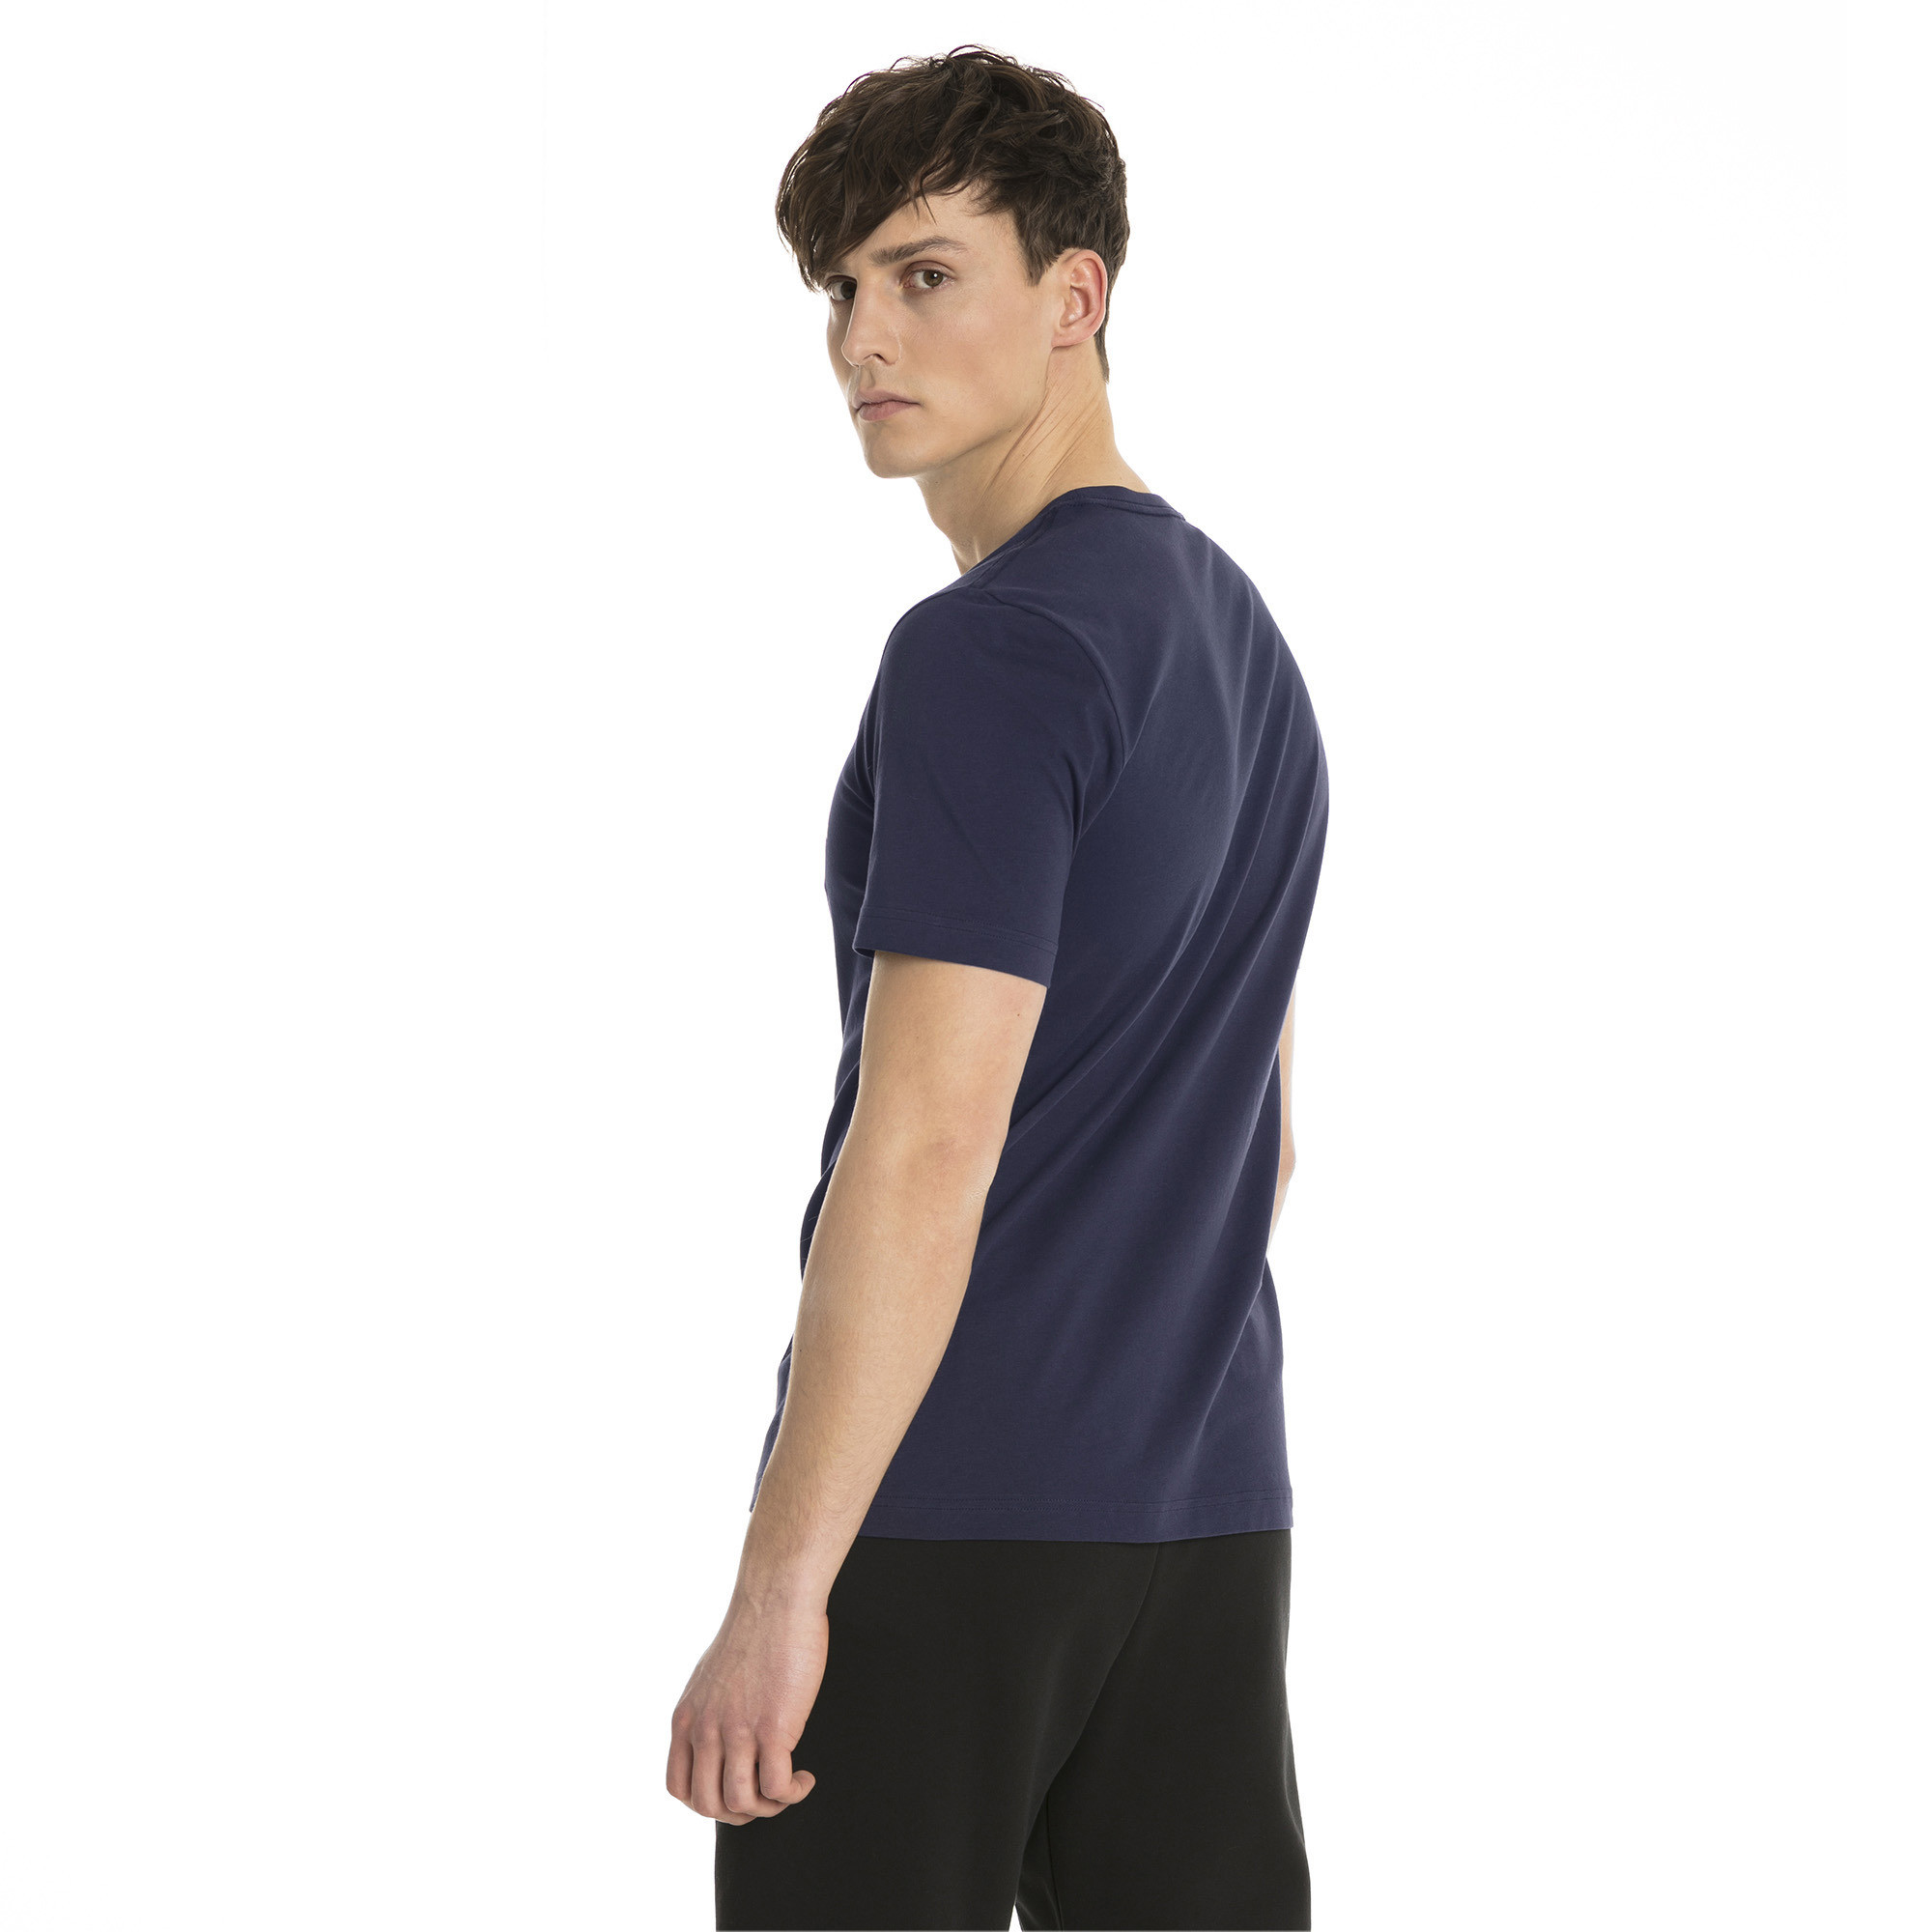 PUMA-Essentials-Men-039-s-Tee-Men-Tee-Basics thumbnail 11